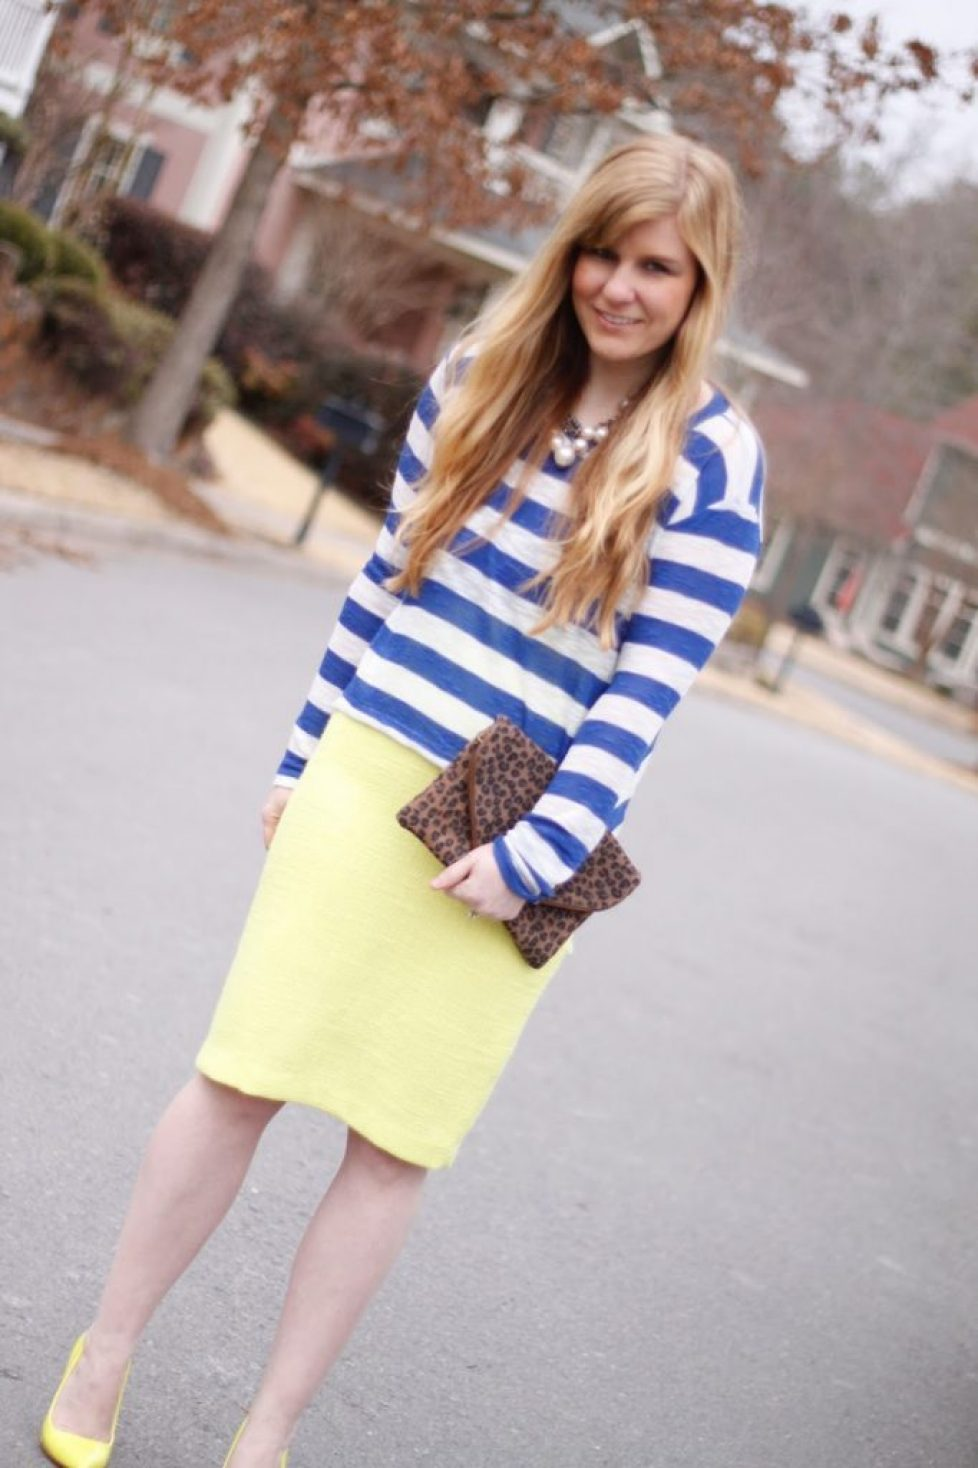 Fashion Blogger Wearing Stripes and Neon Heels